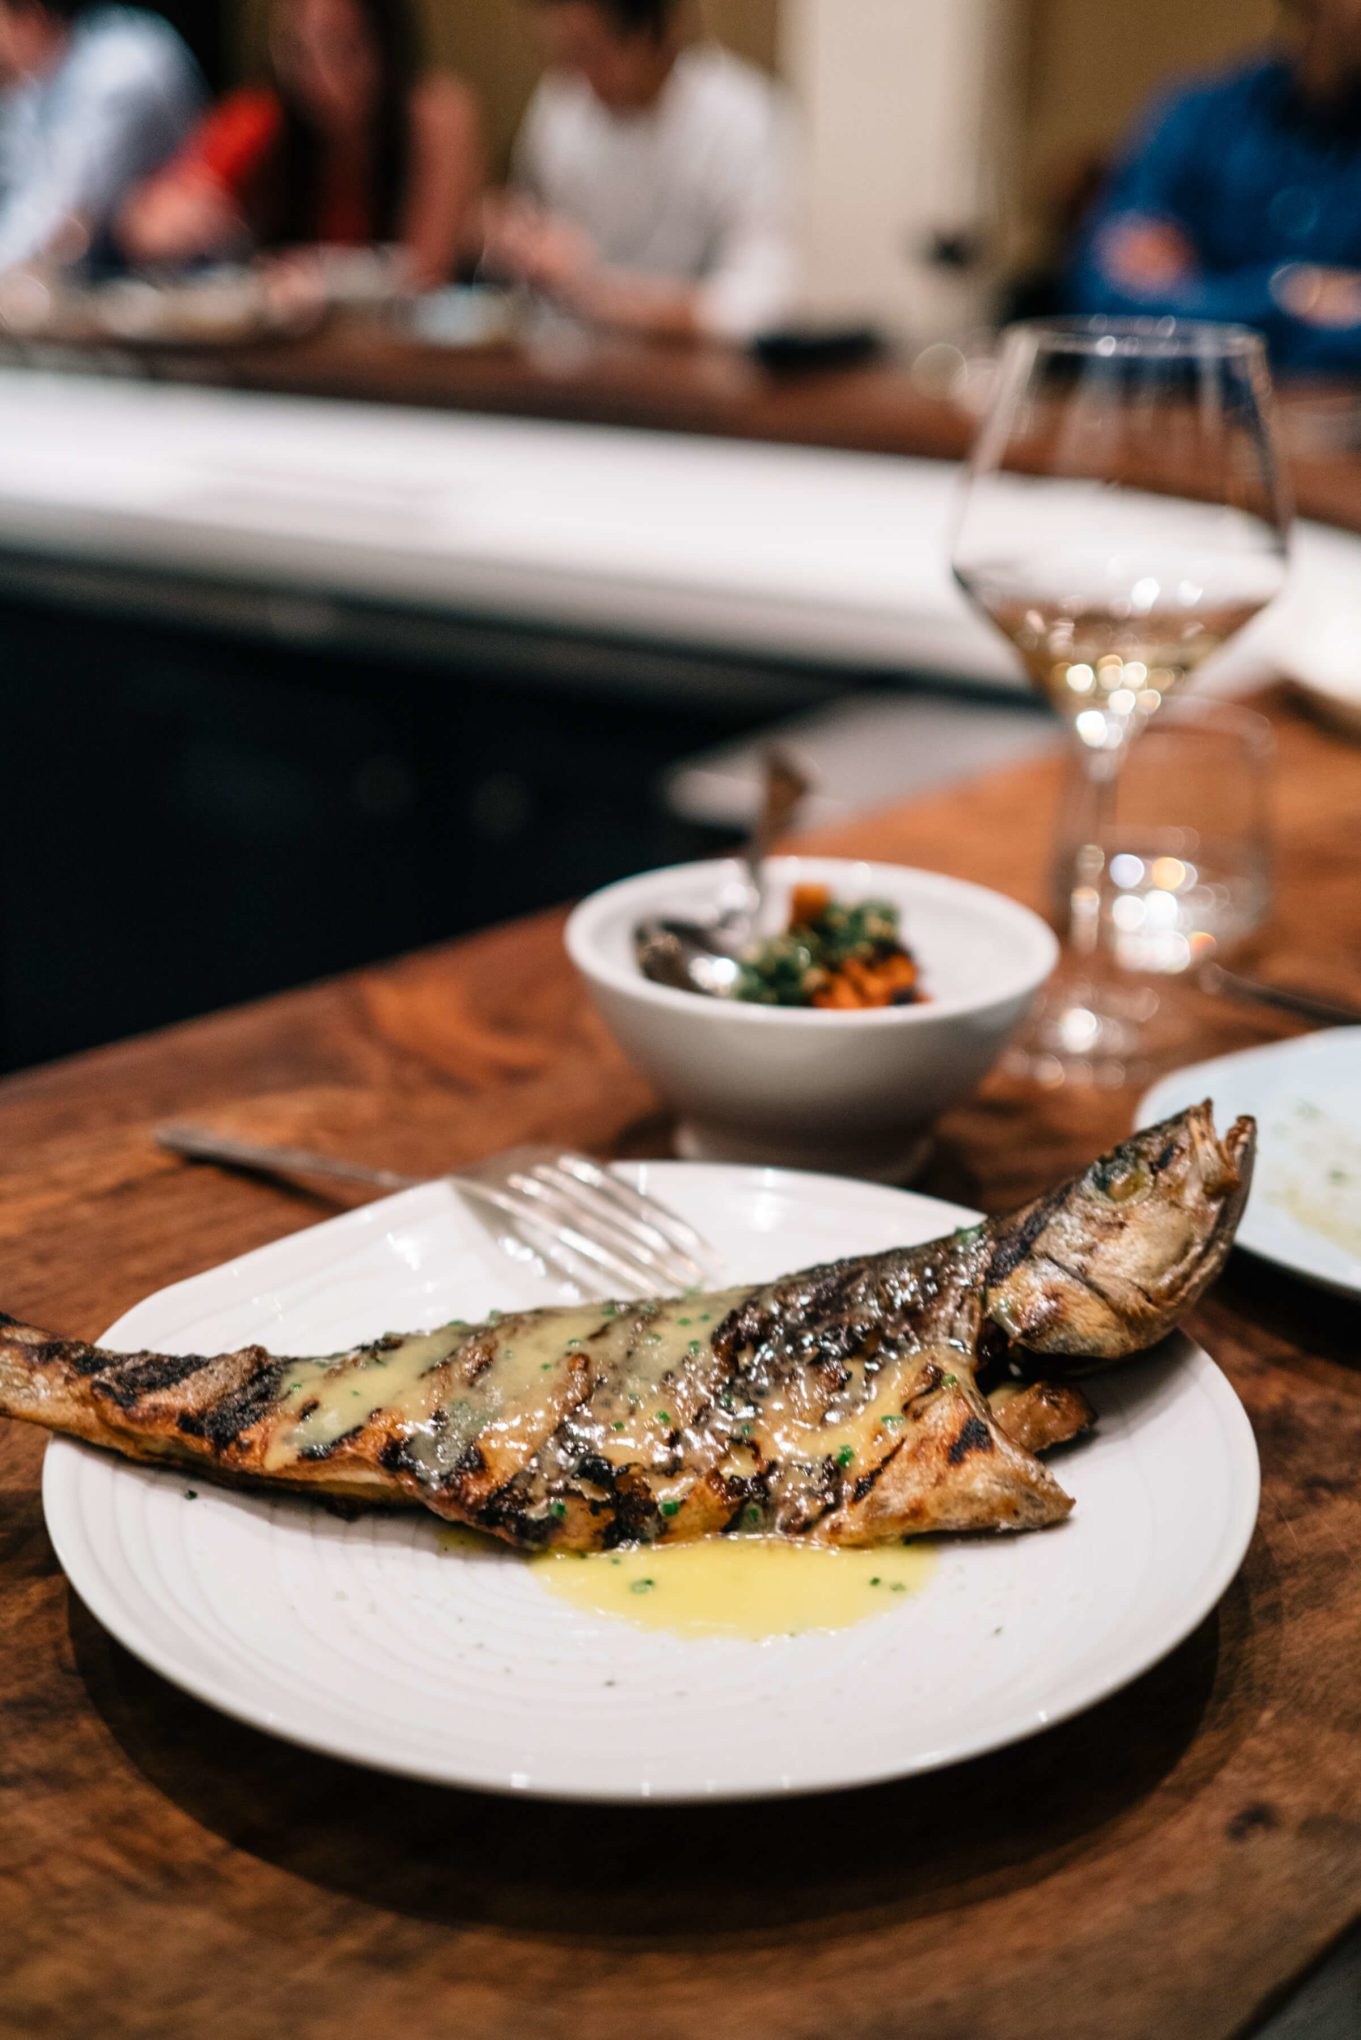 Grilled branzino fish with lemon beurre blanc at Petit Crenn in Hayes Valley San Francisco, Dominique Crenn, The Taste SF